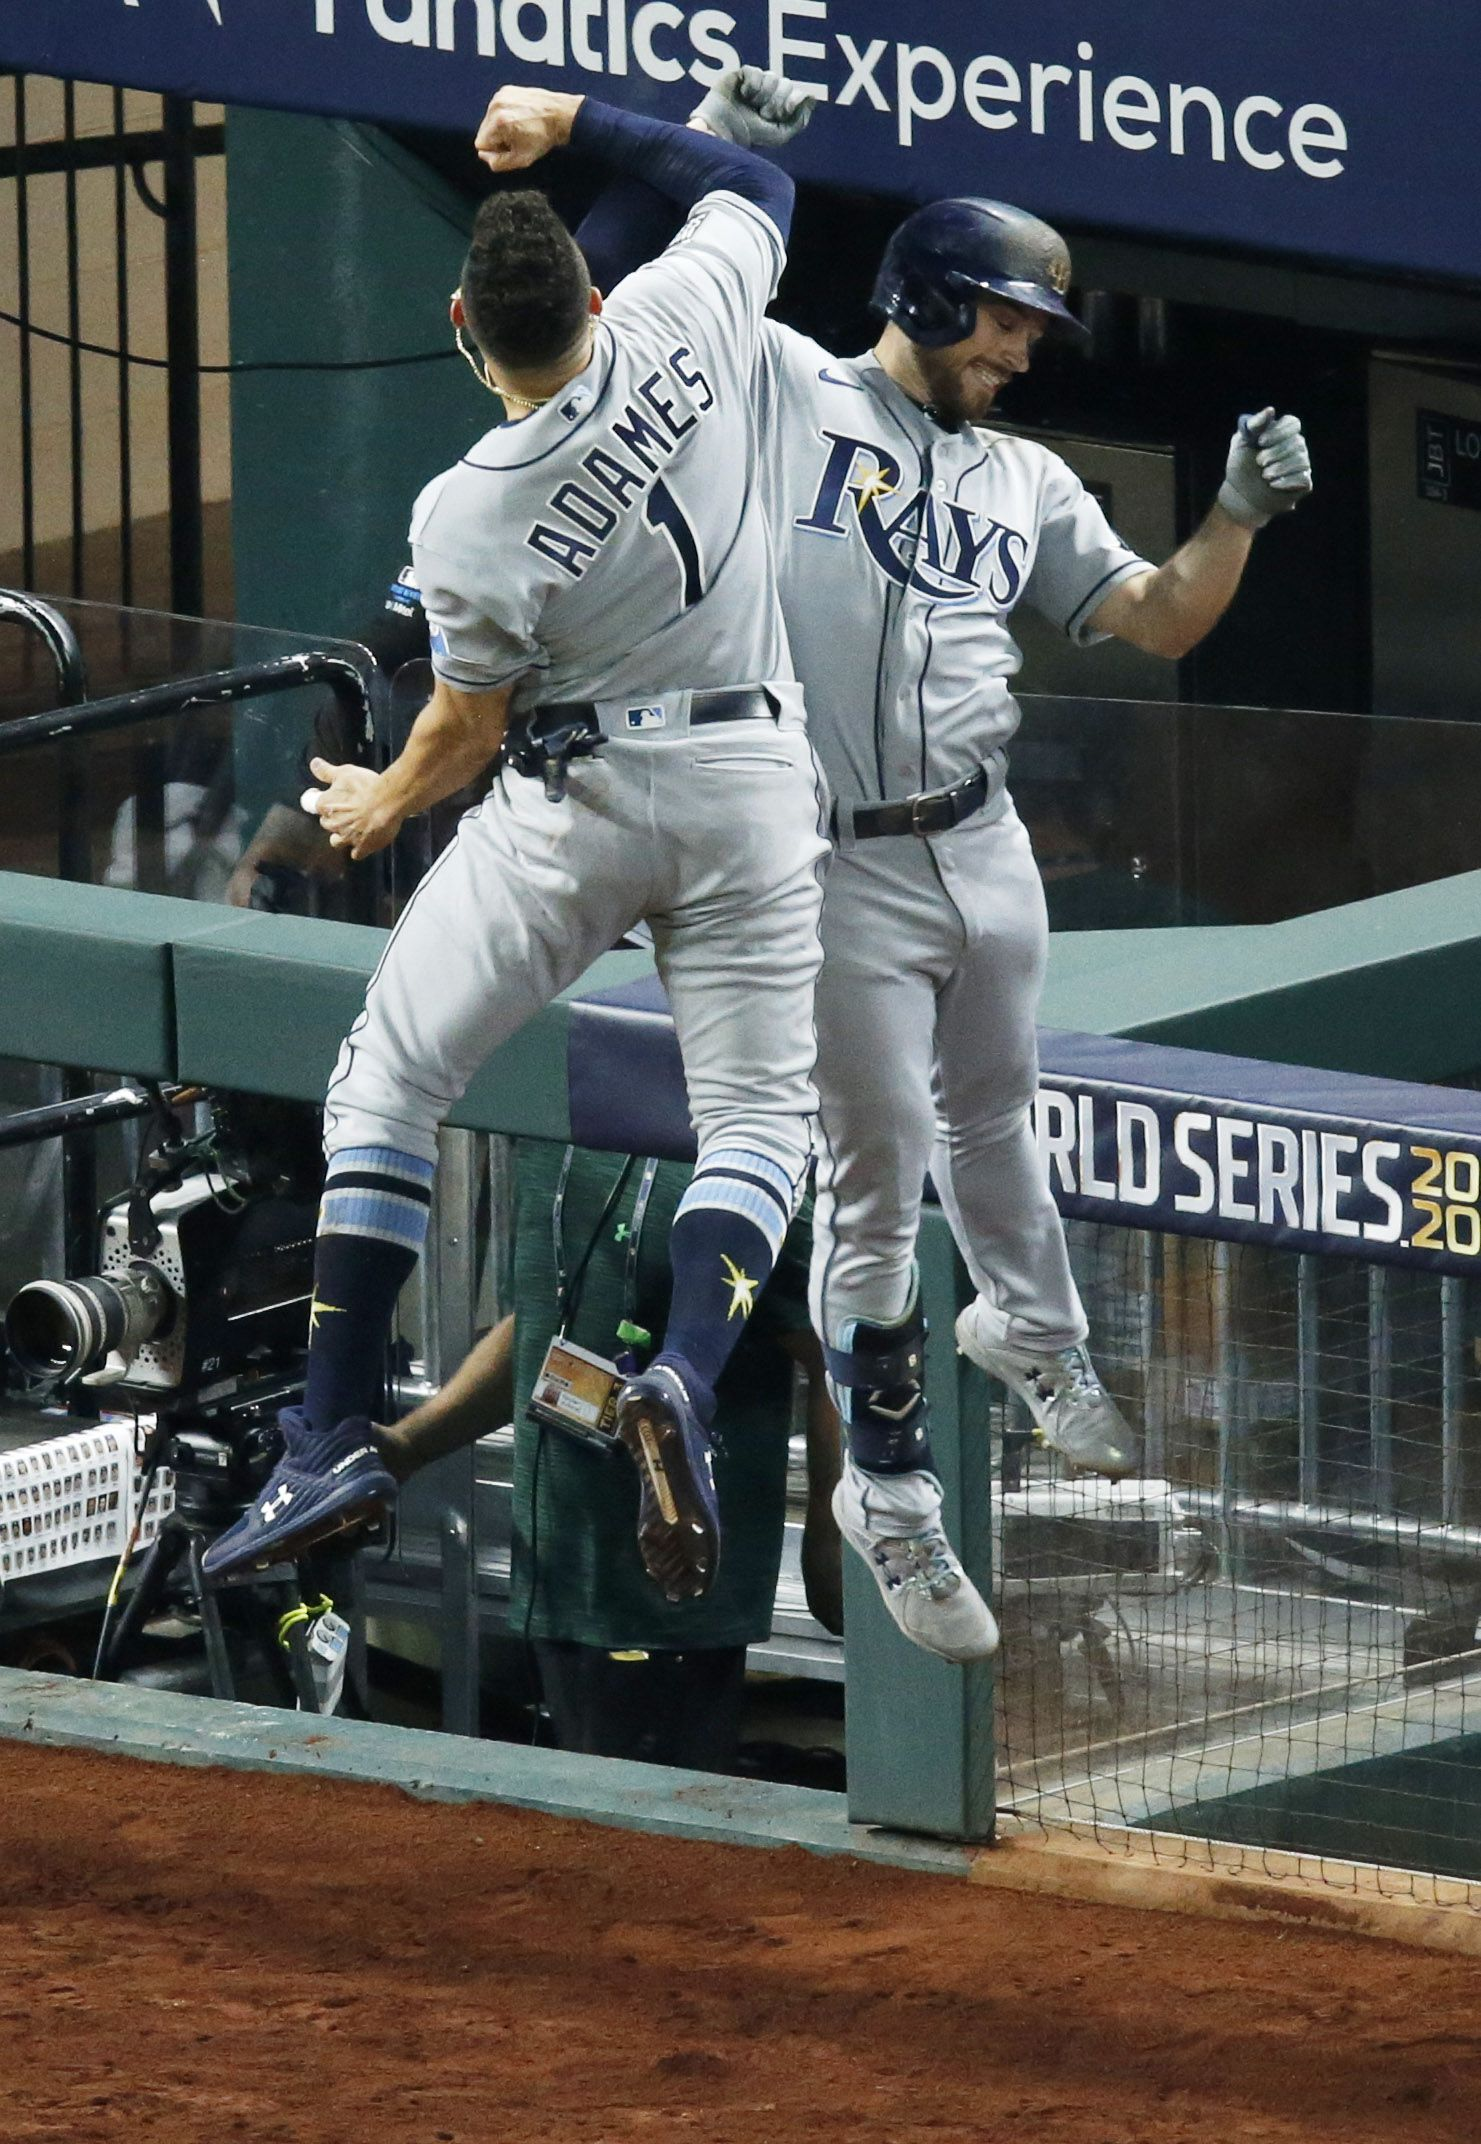 Tampa Bay Rays second baseman Brandon Lowe (8) and Tampa Bay Rays shortstop Willy Adames (1) celebrate after Lowe hit a two run home run during the fifth inning of game two against the Los Angeles Dodgers at the World Series at Globe Life Field on Monday, October 21, 2020 in Arlington, Texas. (Vernon Bryant/The Dallas Morning News)